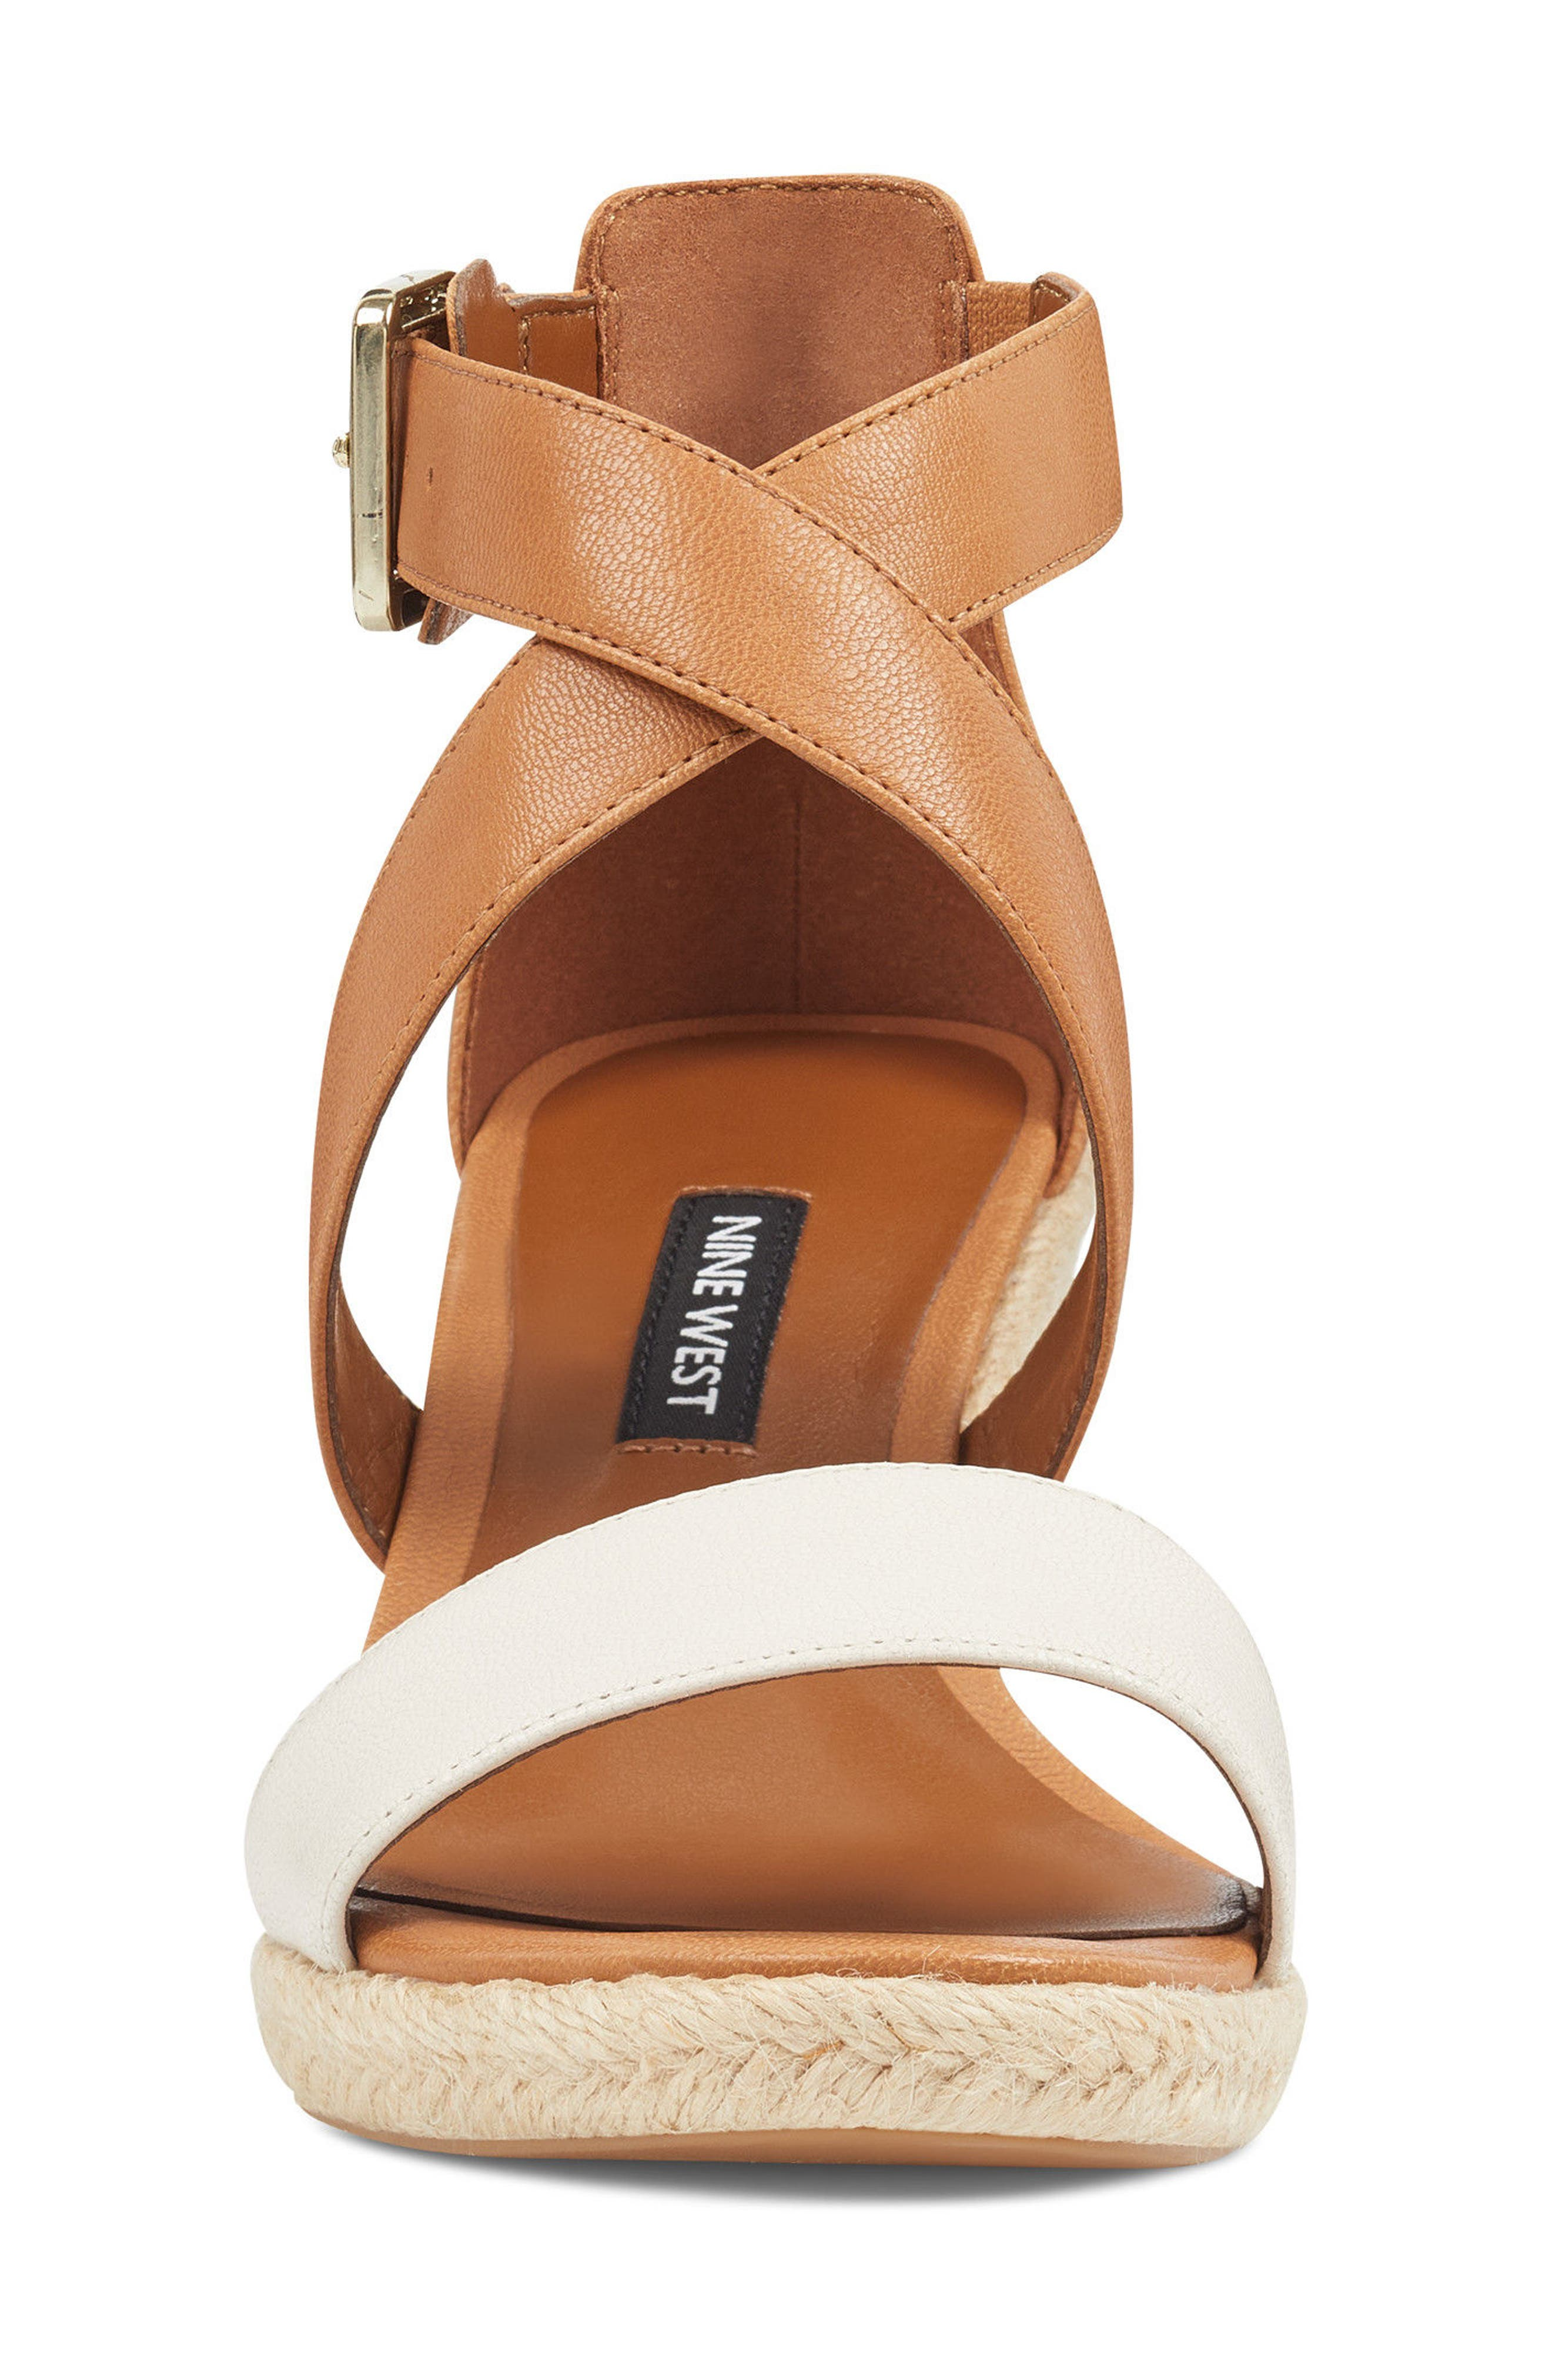 Jorjapeach Espadrille Wedge Sandal,                             Alternate thumbnail 4, color,                             White Leather